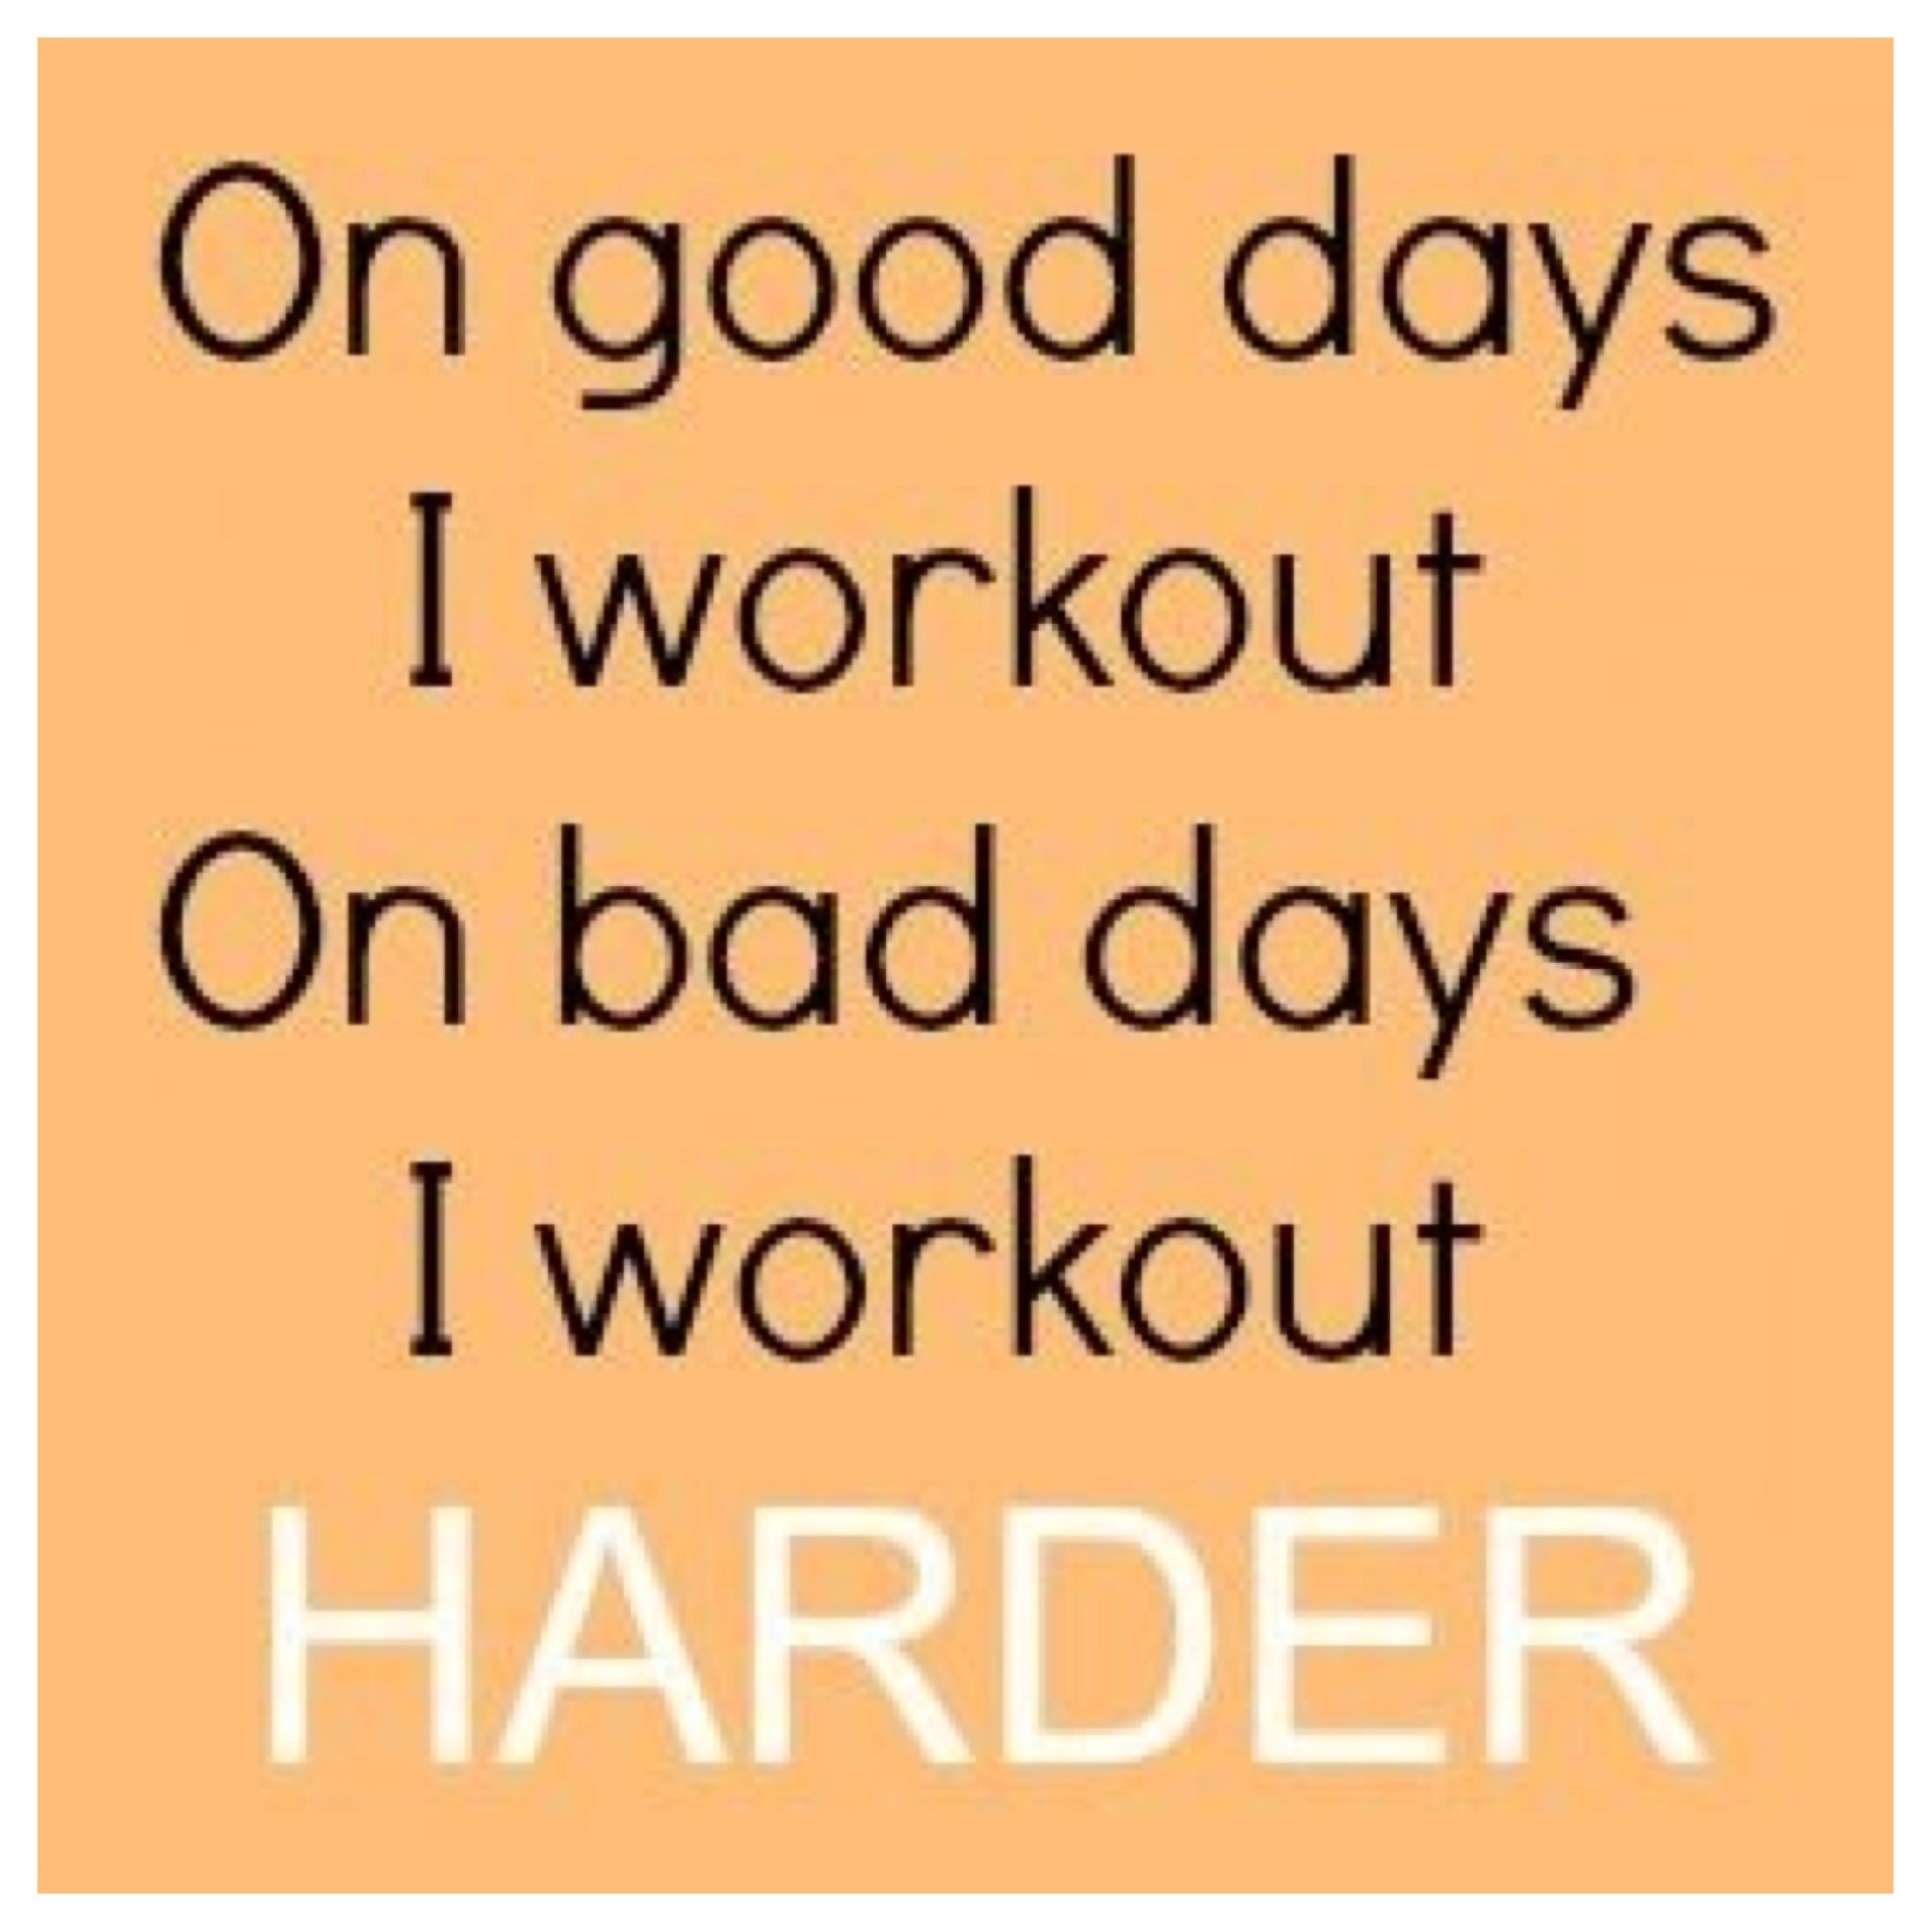 Bad days make for a good workout!!!